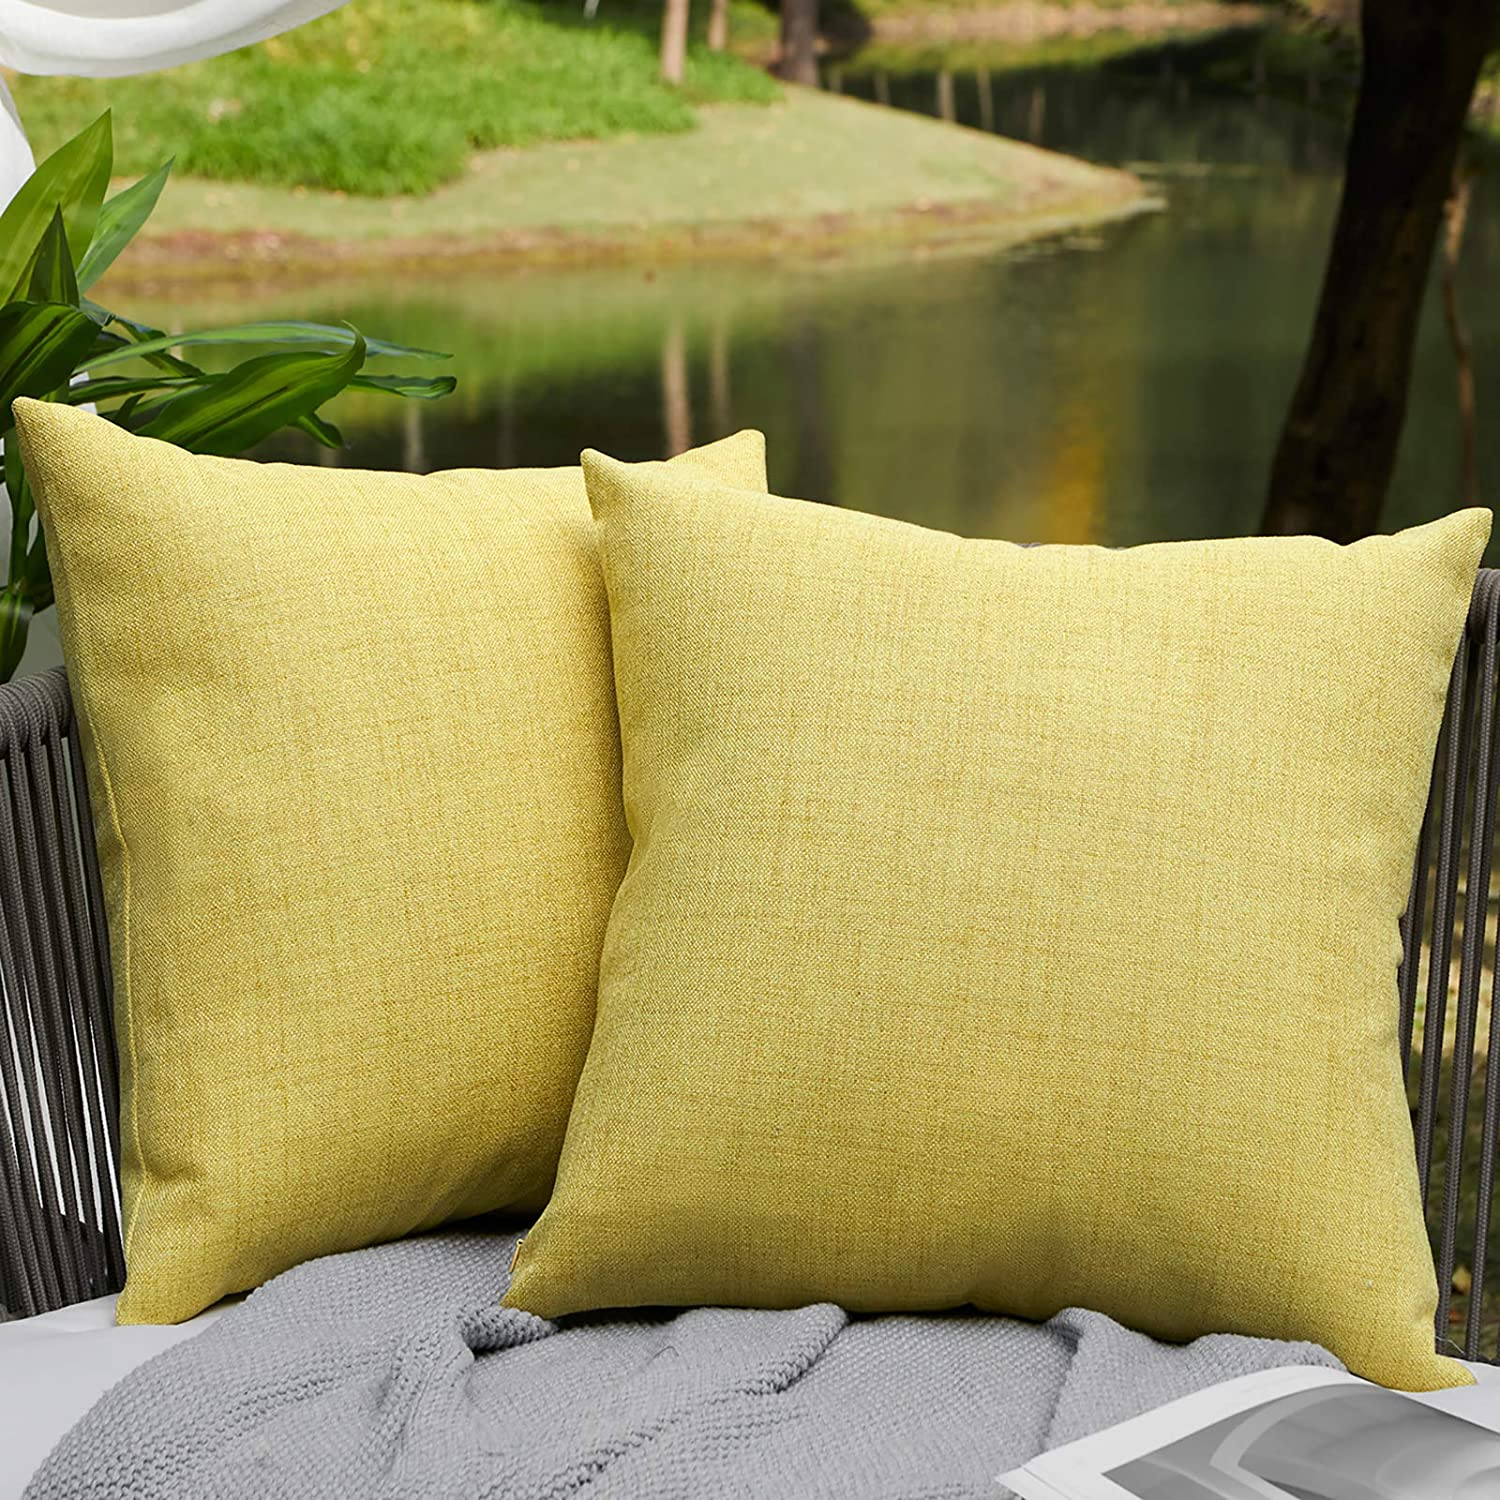 WAYIMPRESS Outdoor Fall Pillows Waterproof Pack of 2 Decorative Pillow Covers Square Garden Cushion Farmhouse Linen Throw Pillow Covers Shell for Patio Tent Couch(18 x 18,Yellow)